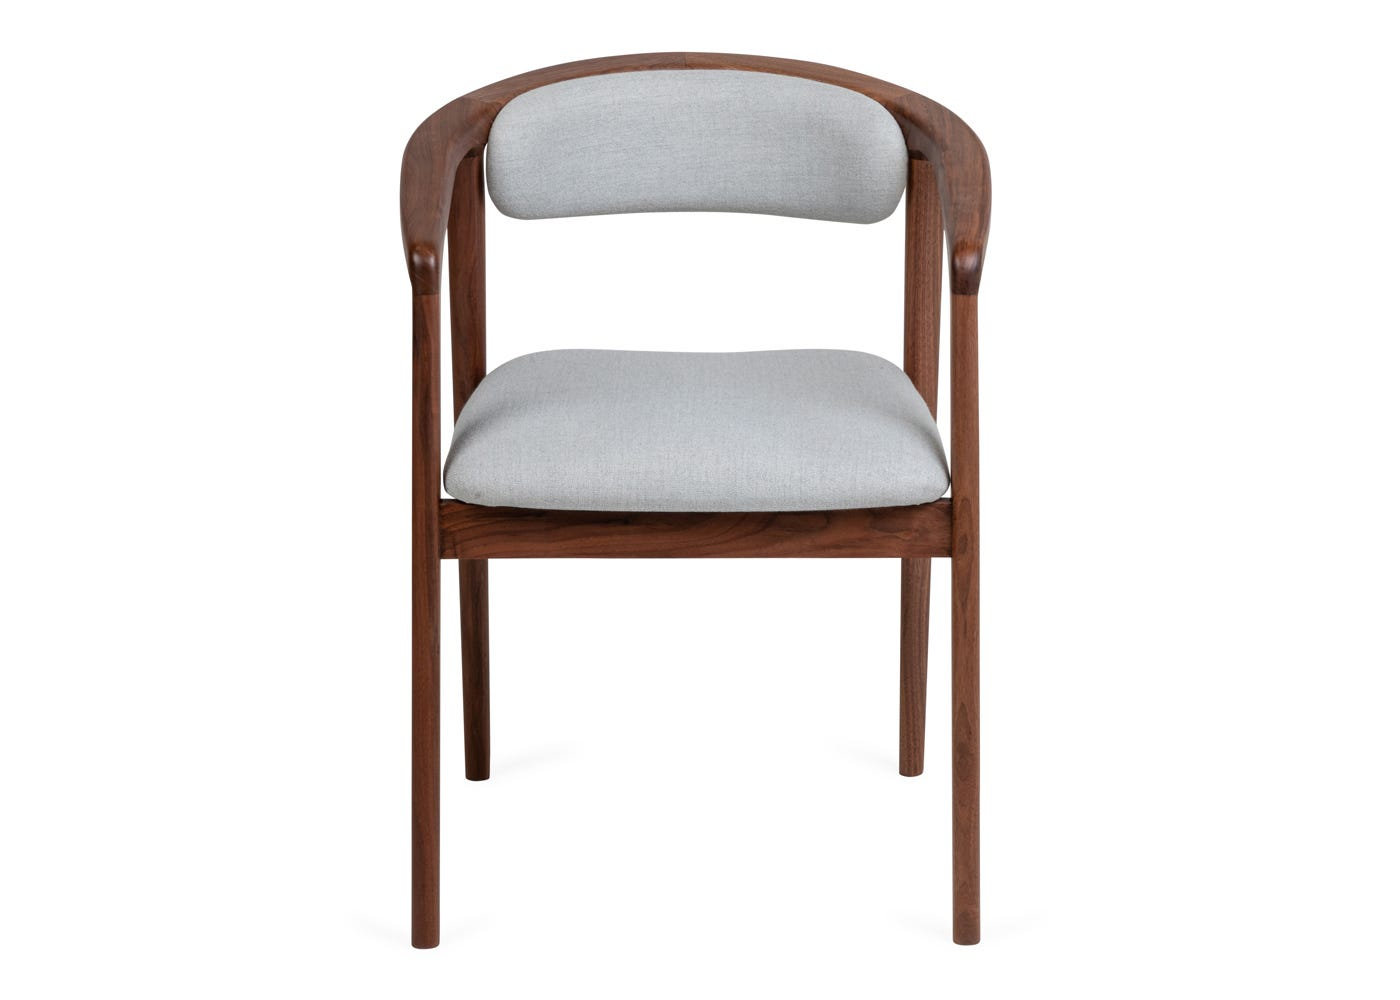 As shown Anais Dining Chair - Front profile.